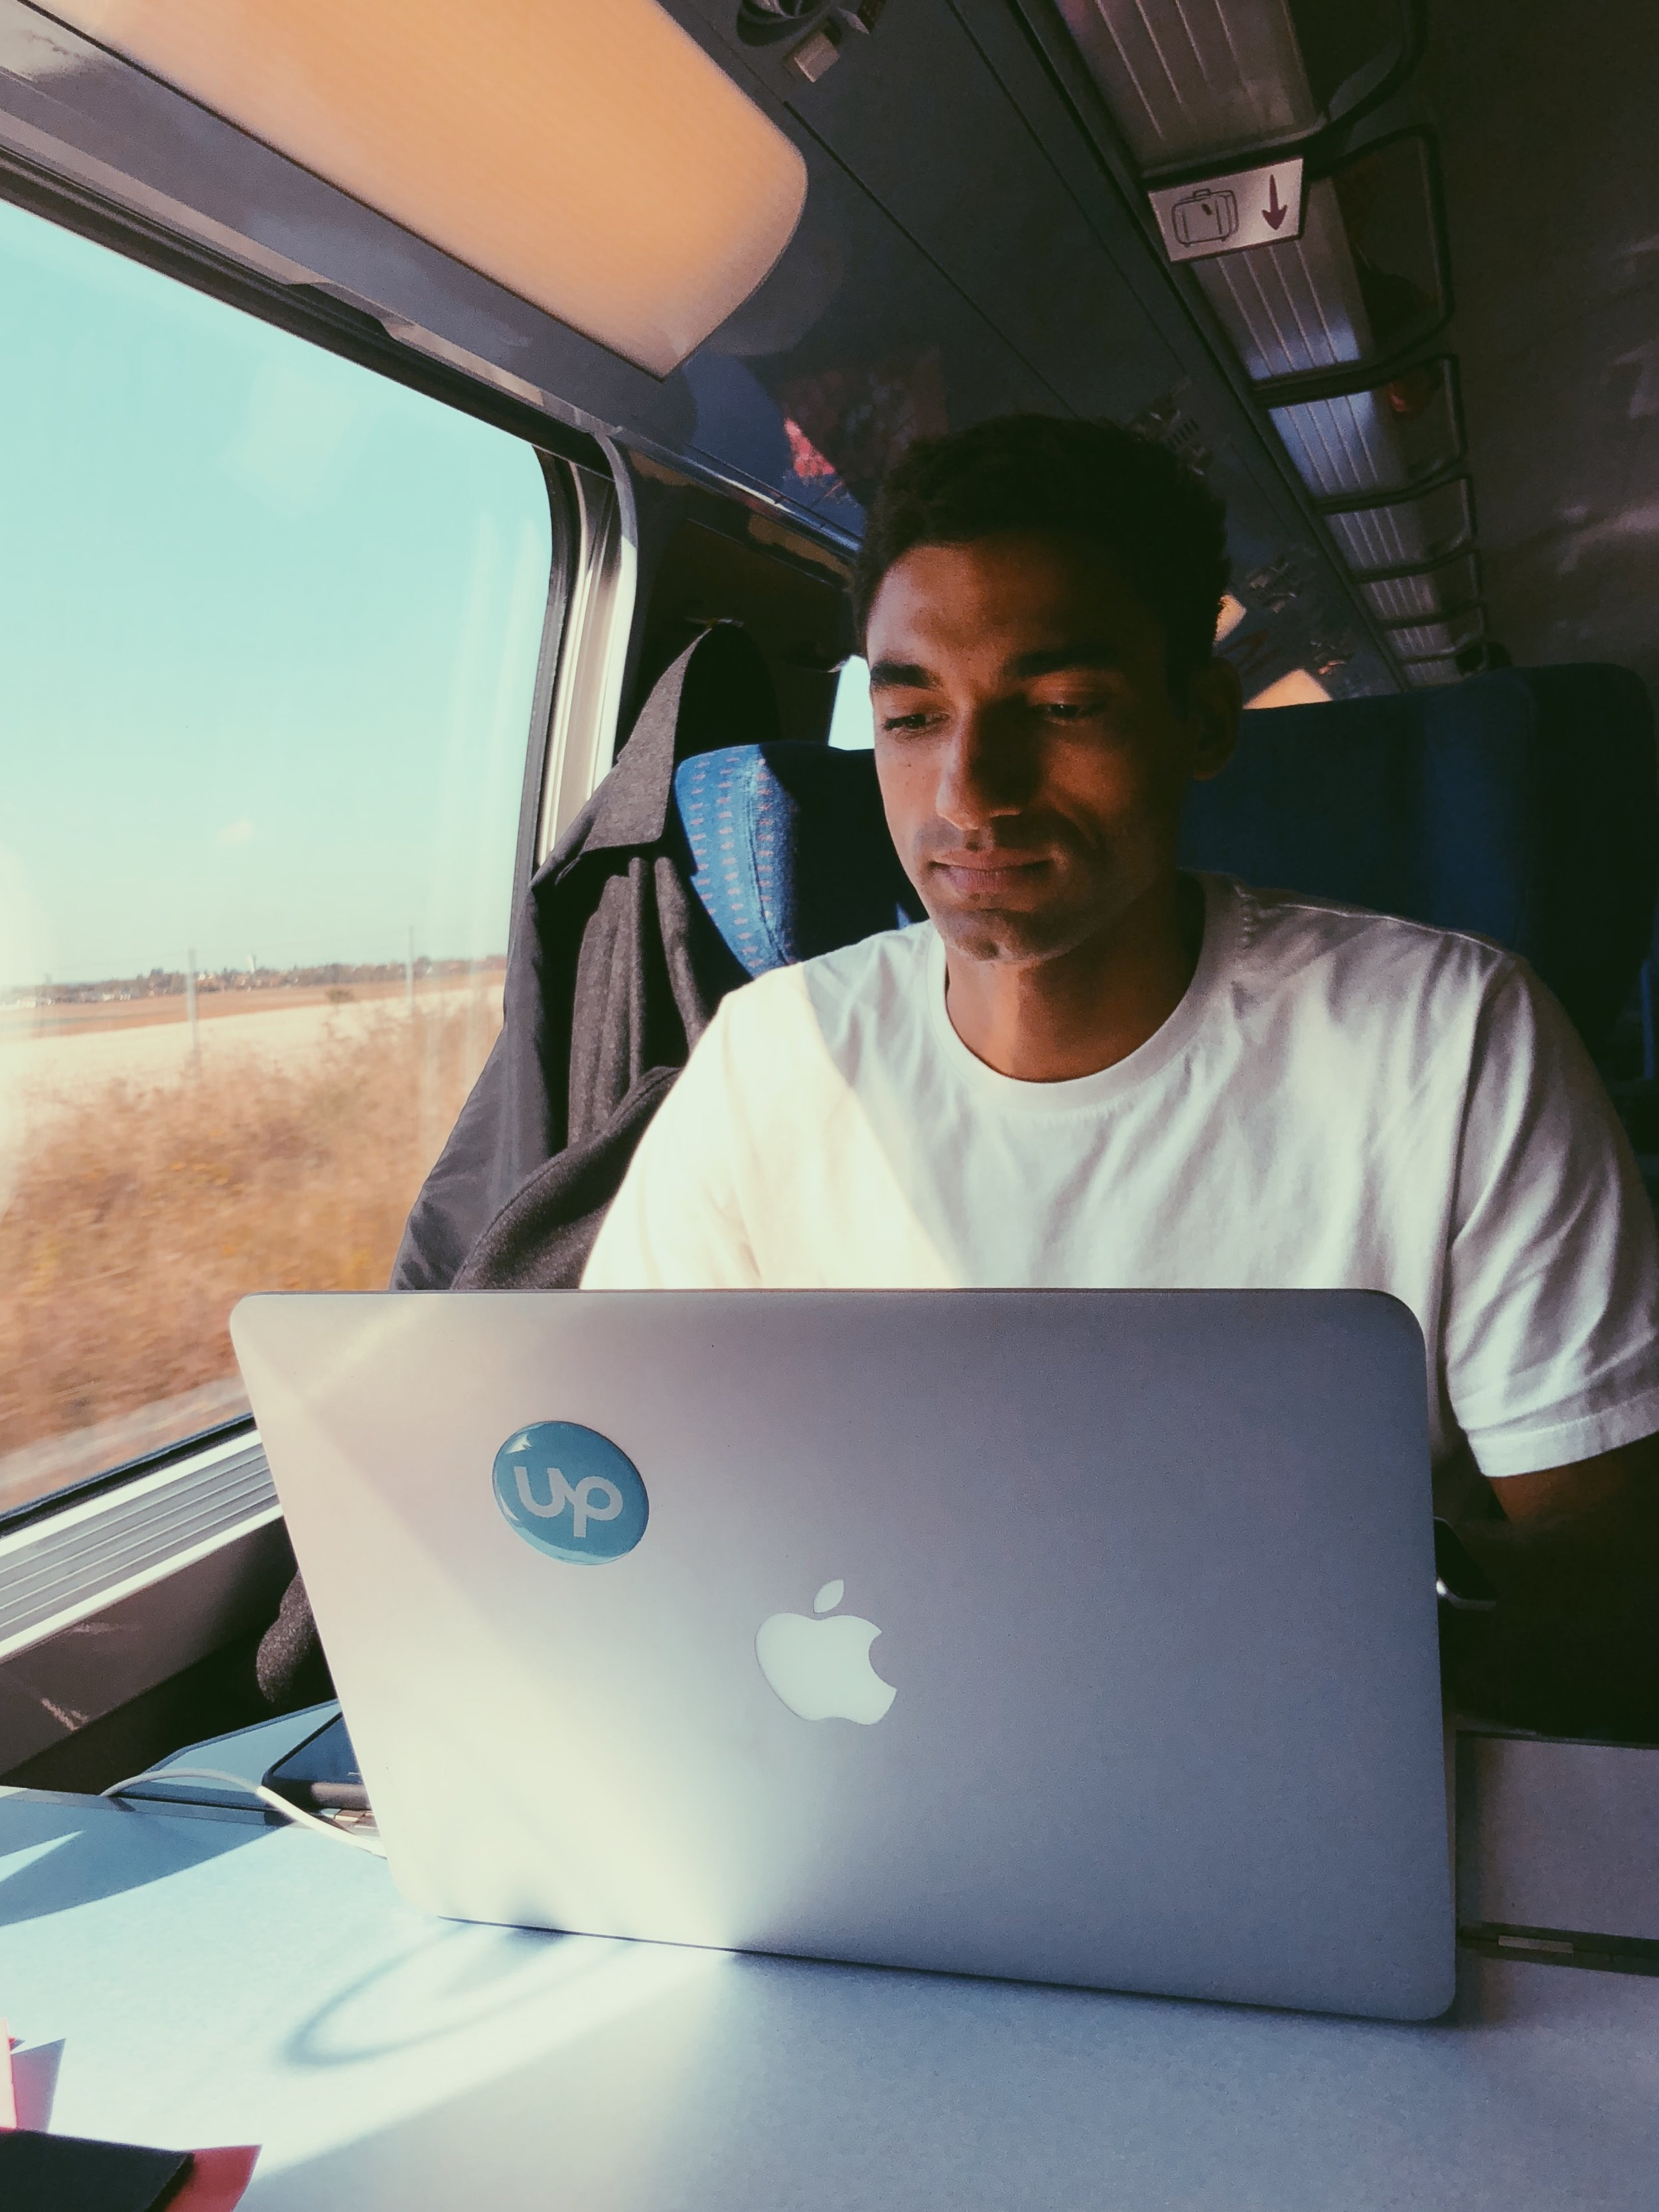 the freedom to work from anywhere - means you will work everywhere